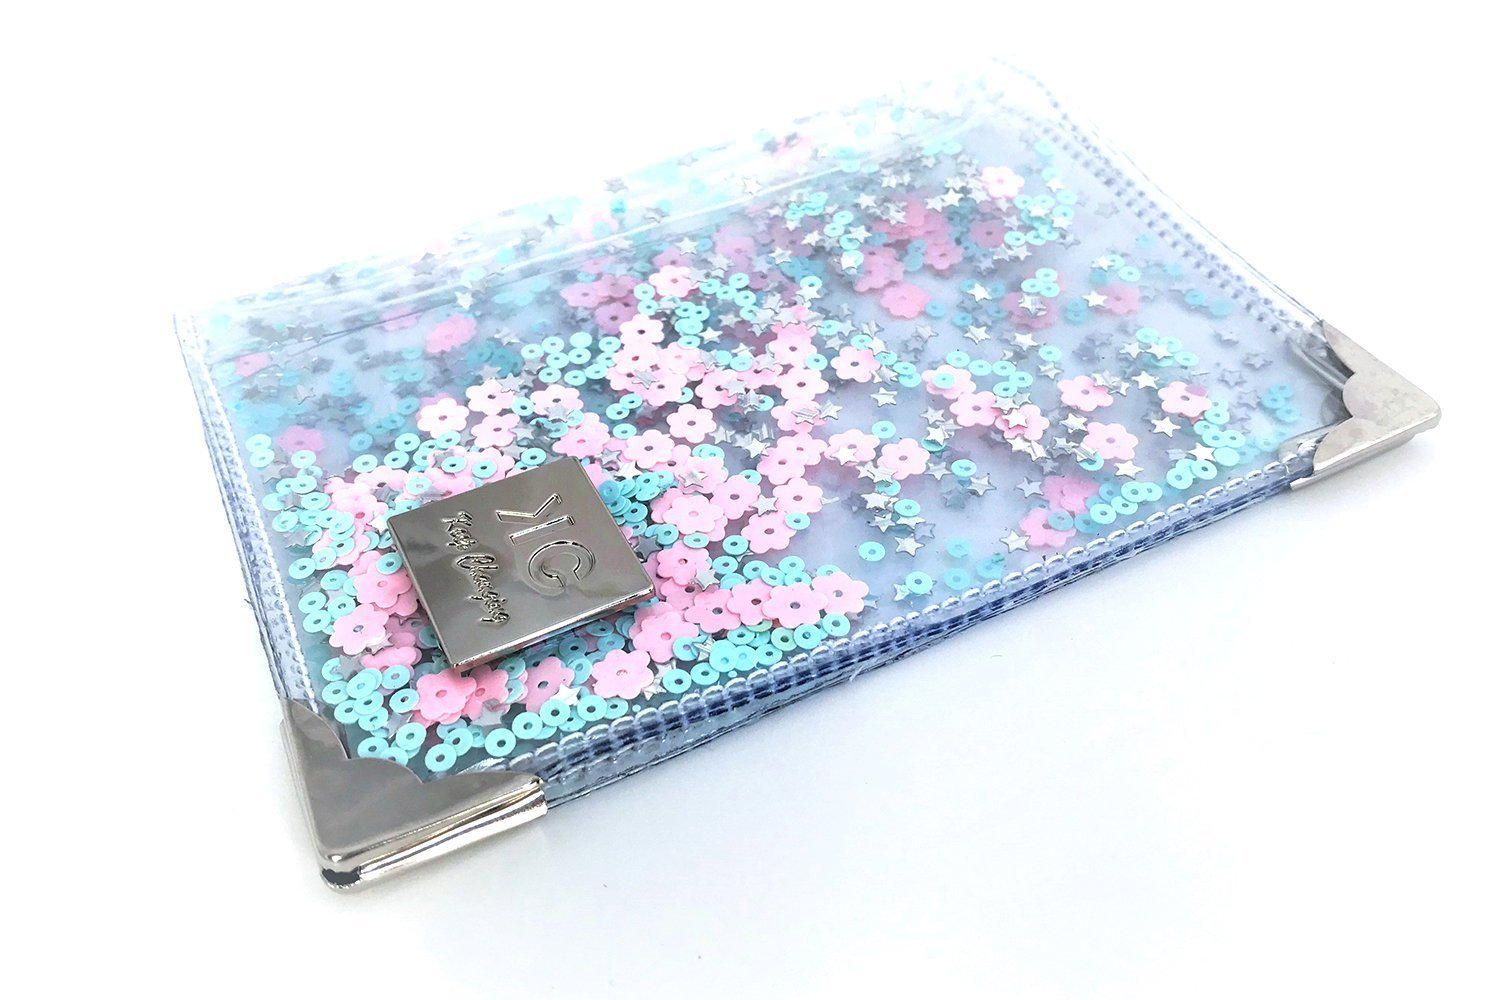 Designer Pastel Glitter Passport Holder, Handmade Transparent Cute Vegan Cover for Women, Clear Passport Case